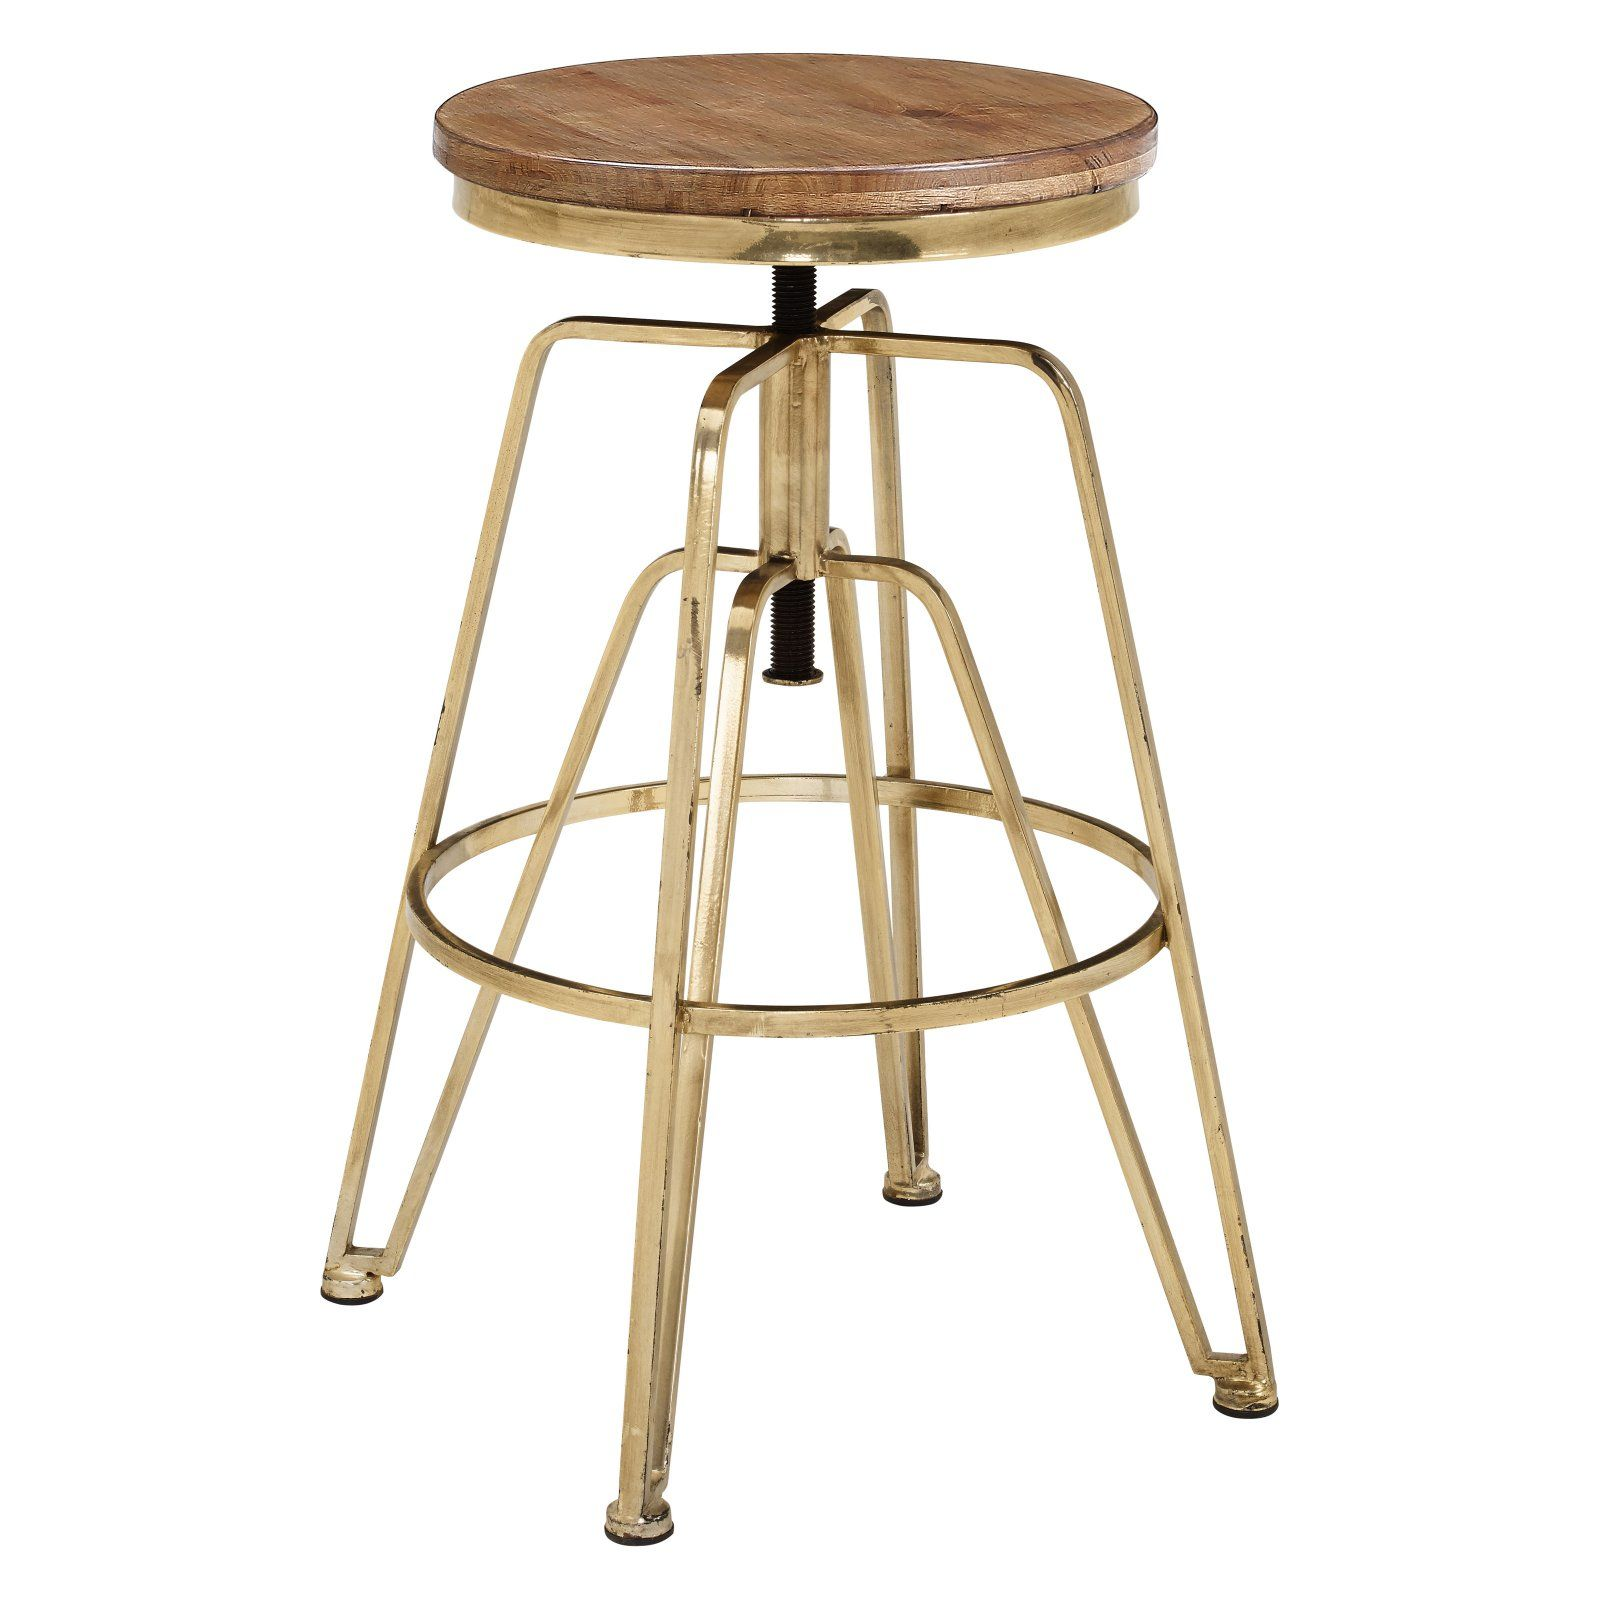 Super Linon Wood And Metal Adjustable Bar Stool In 2019 Products Pdpeps Interior Chair Design Pdpepsorg